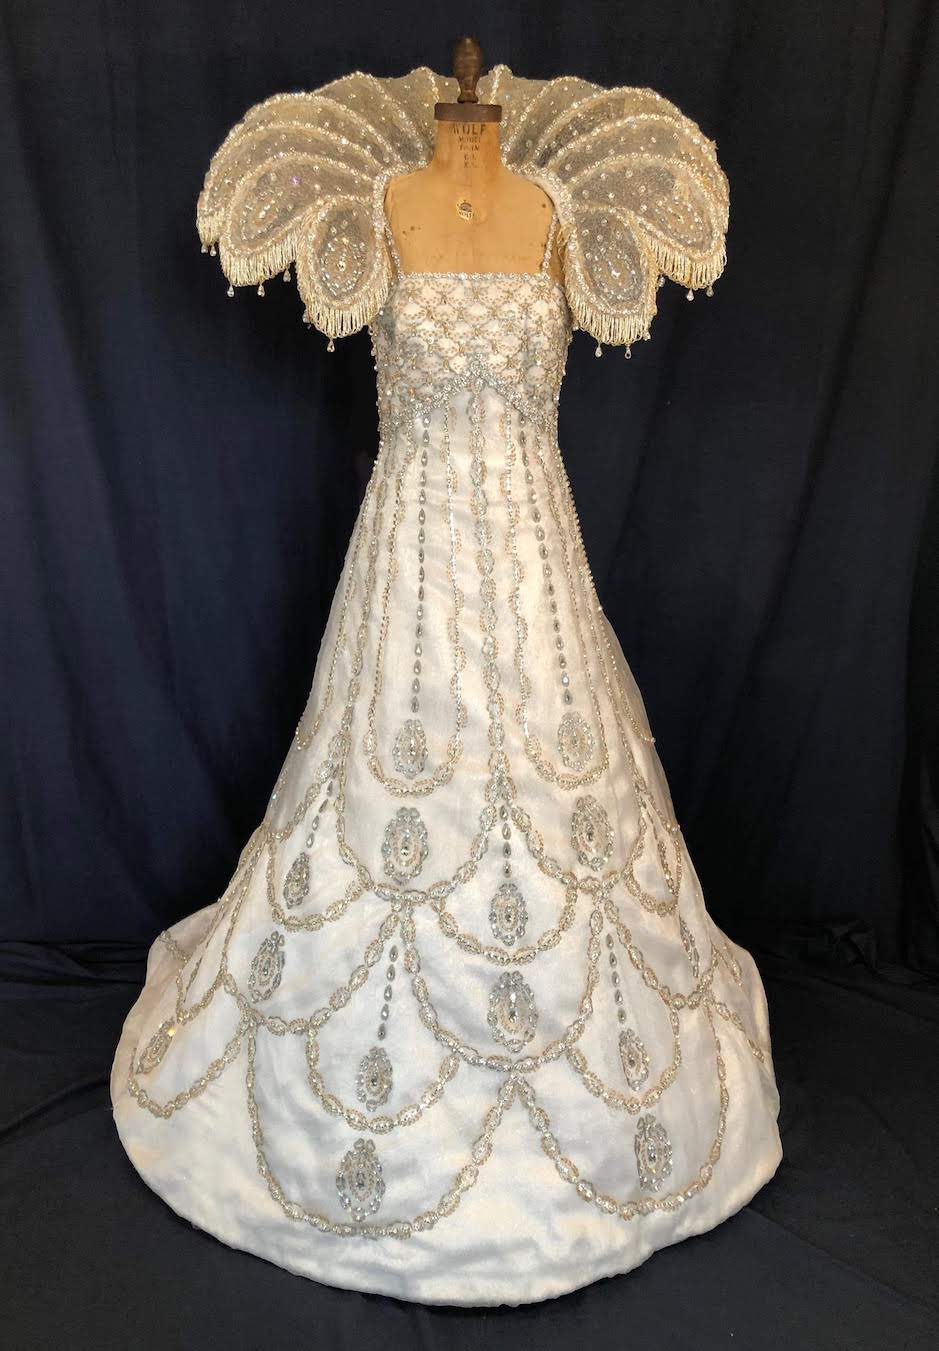 embossed Queen's gown antique white with silver and gold embossed gown & collar front view